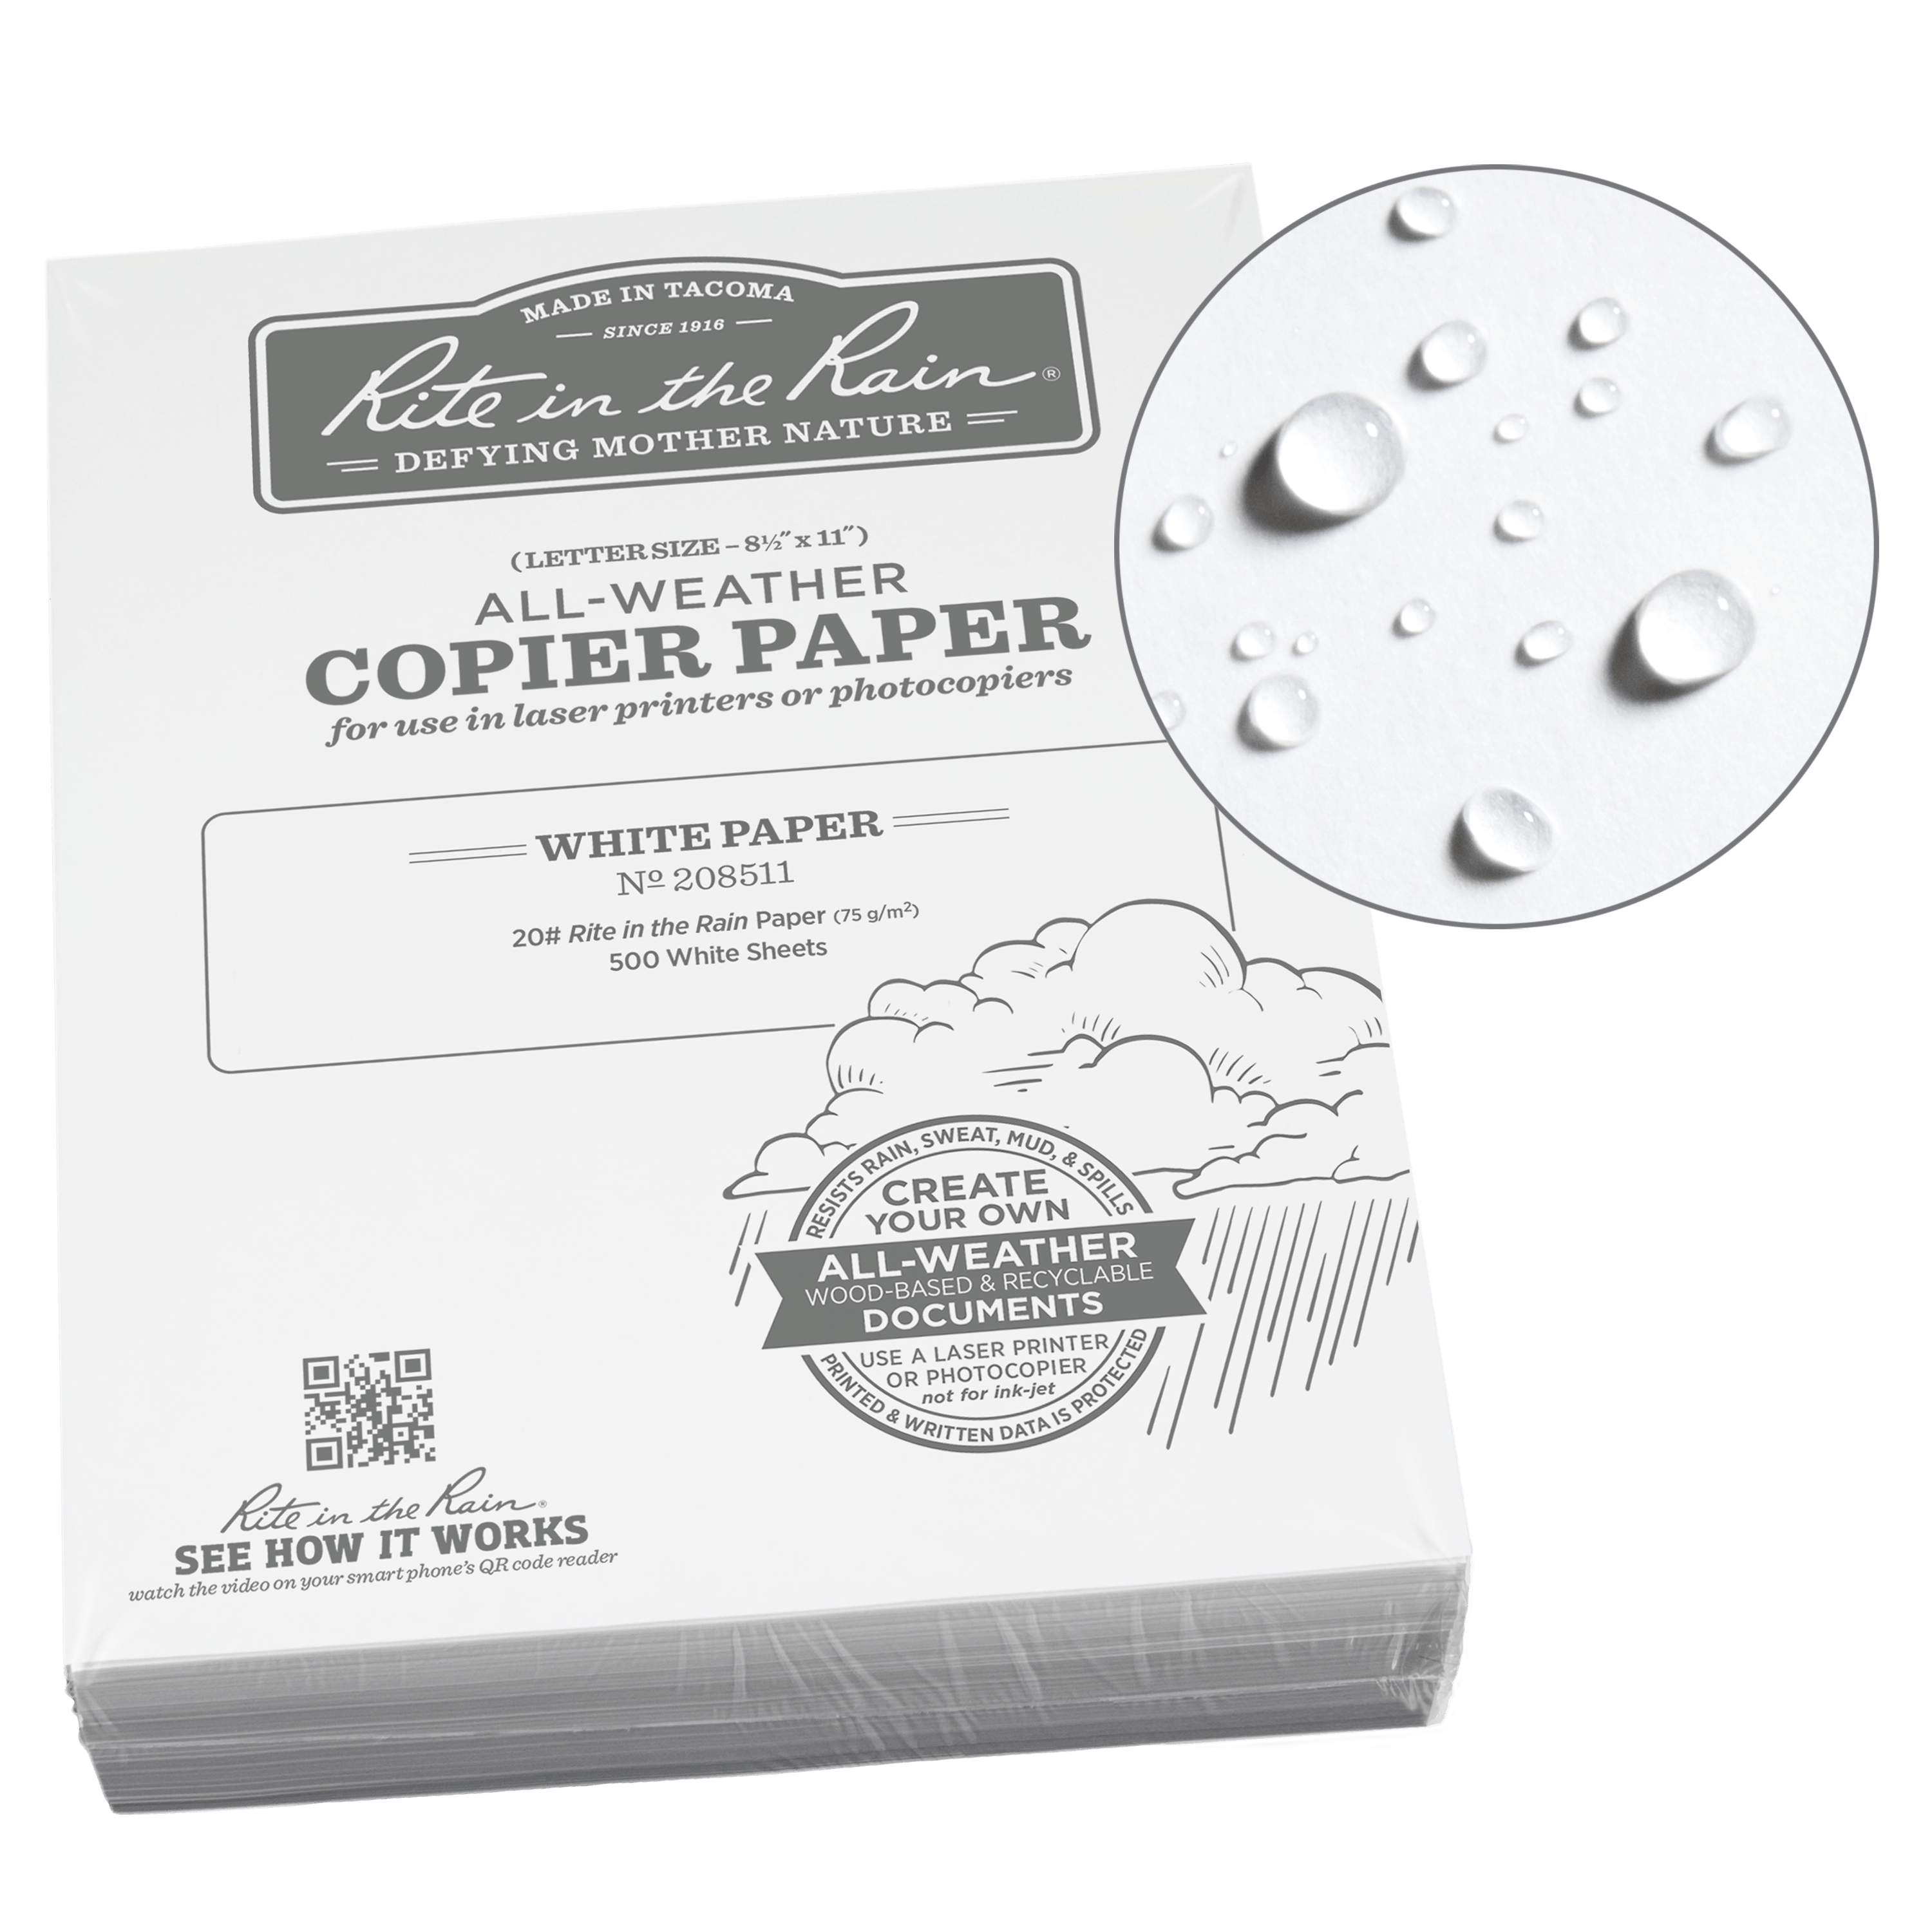 "Rite in the Rain All-Weather Bulk Copier Paper, 8 1/2"" x 11"", 20# White, 500 Sheet Pack (No. 208511)"